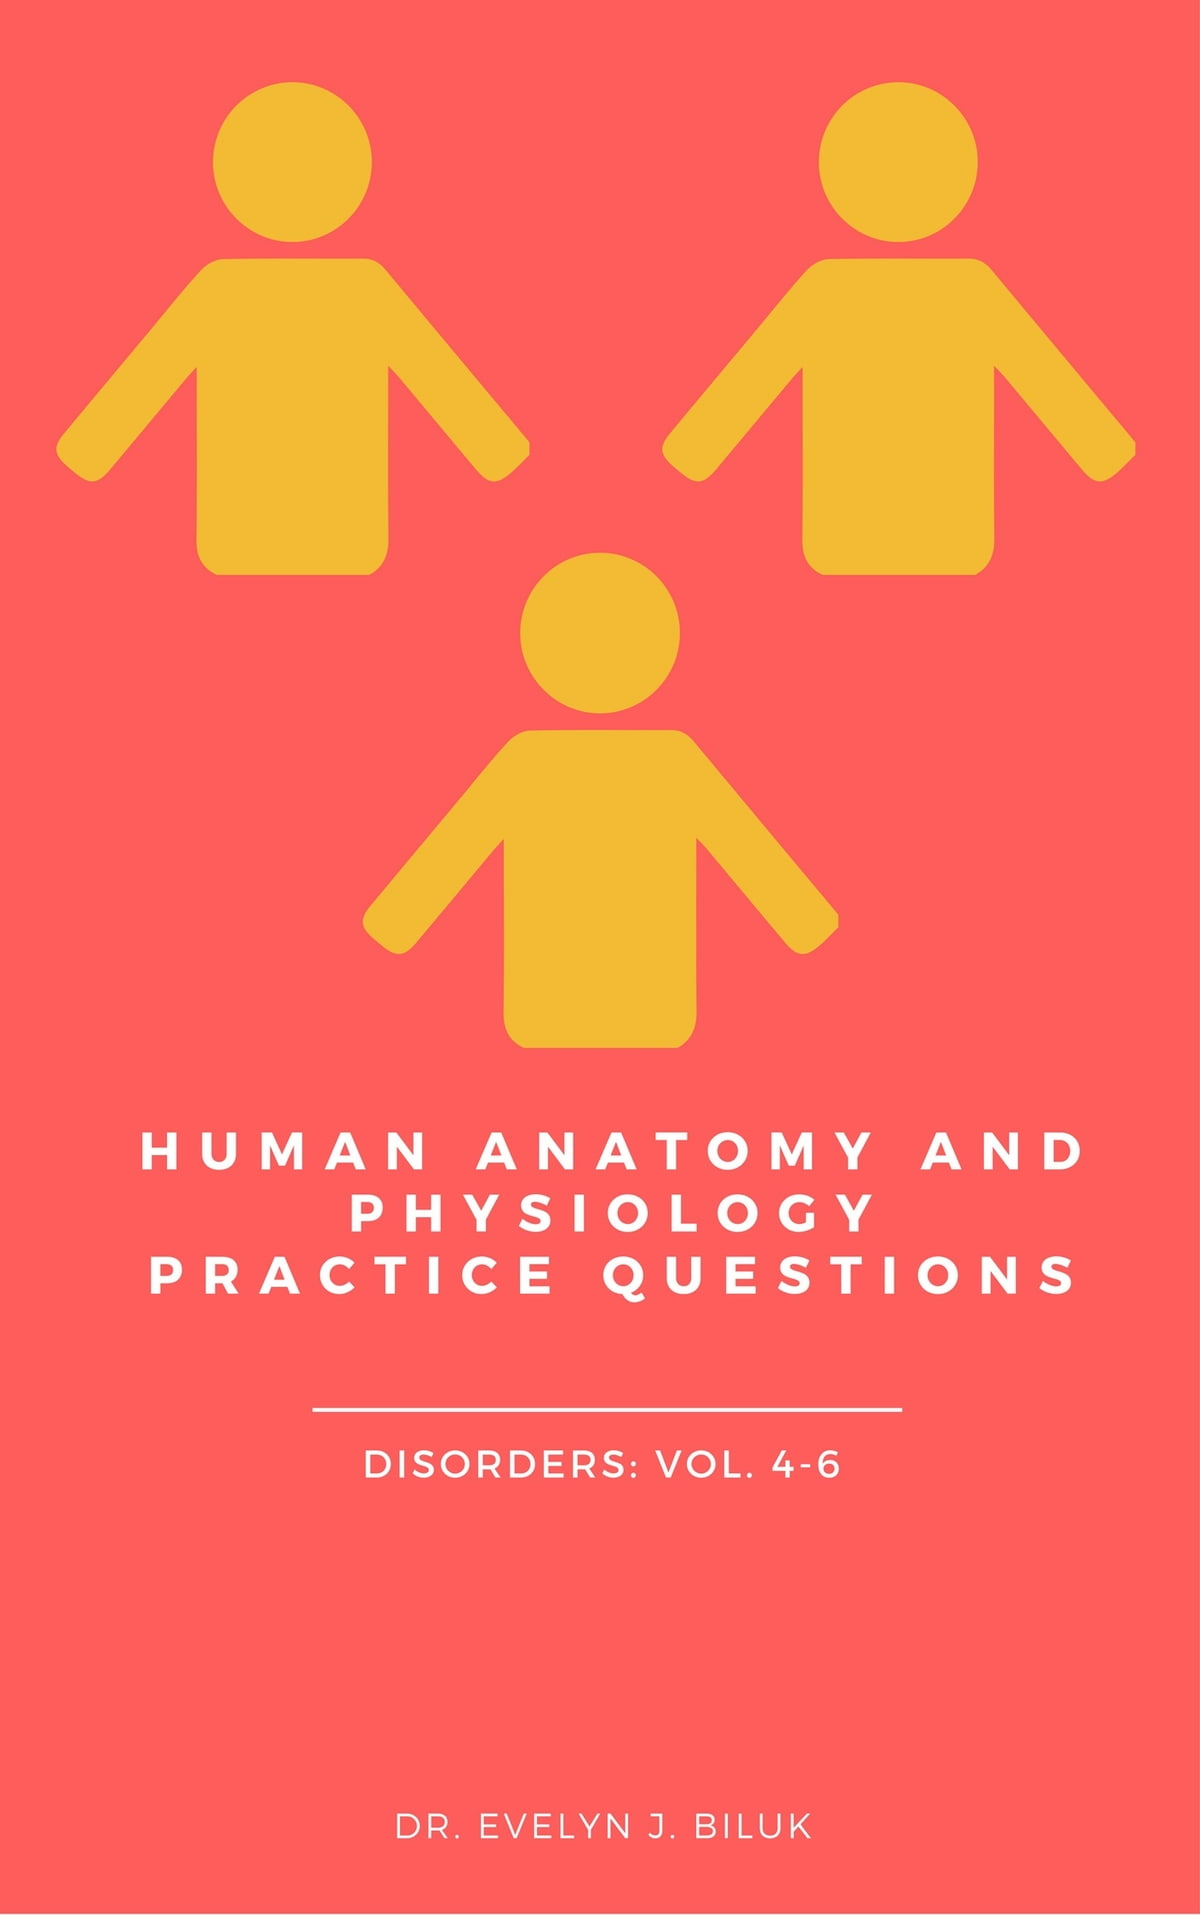 Human Anatomy And Physiology Practice Questions Disorders Vol 4 6